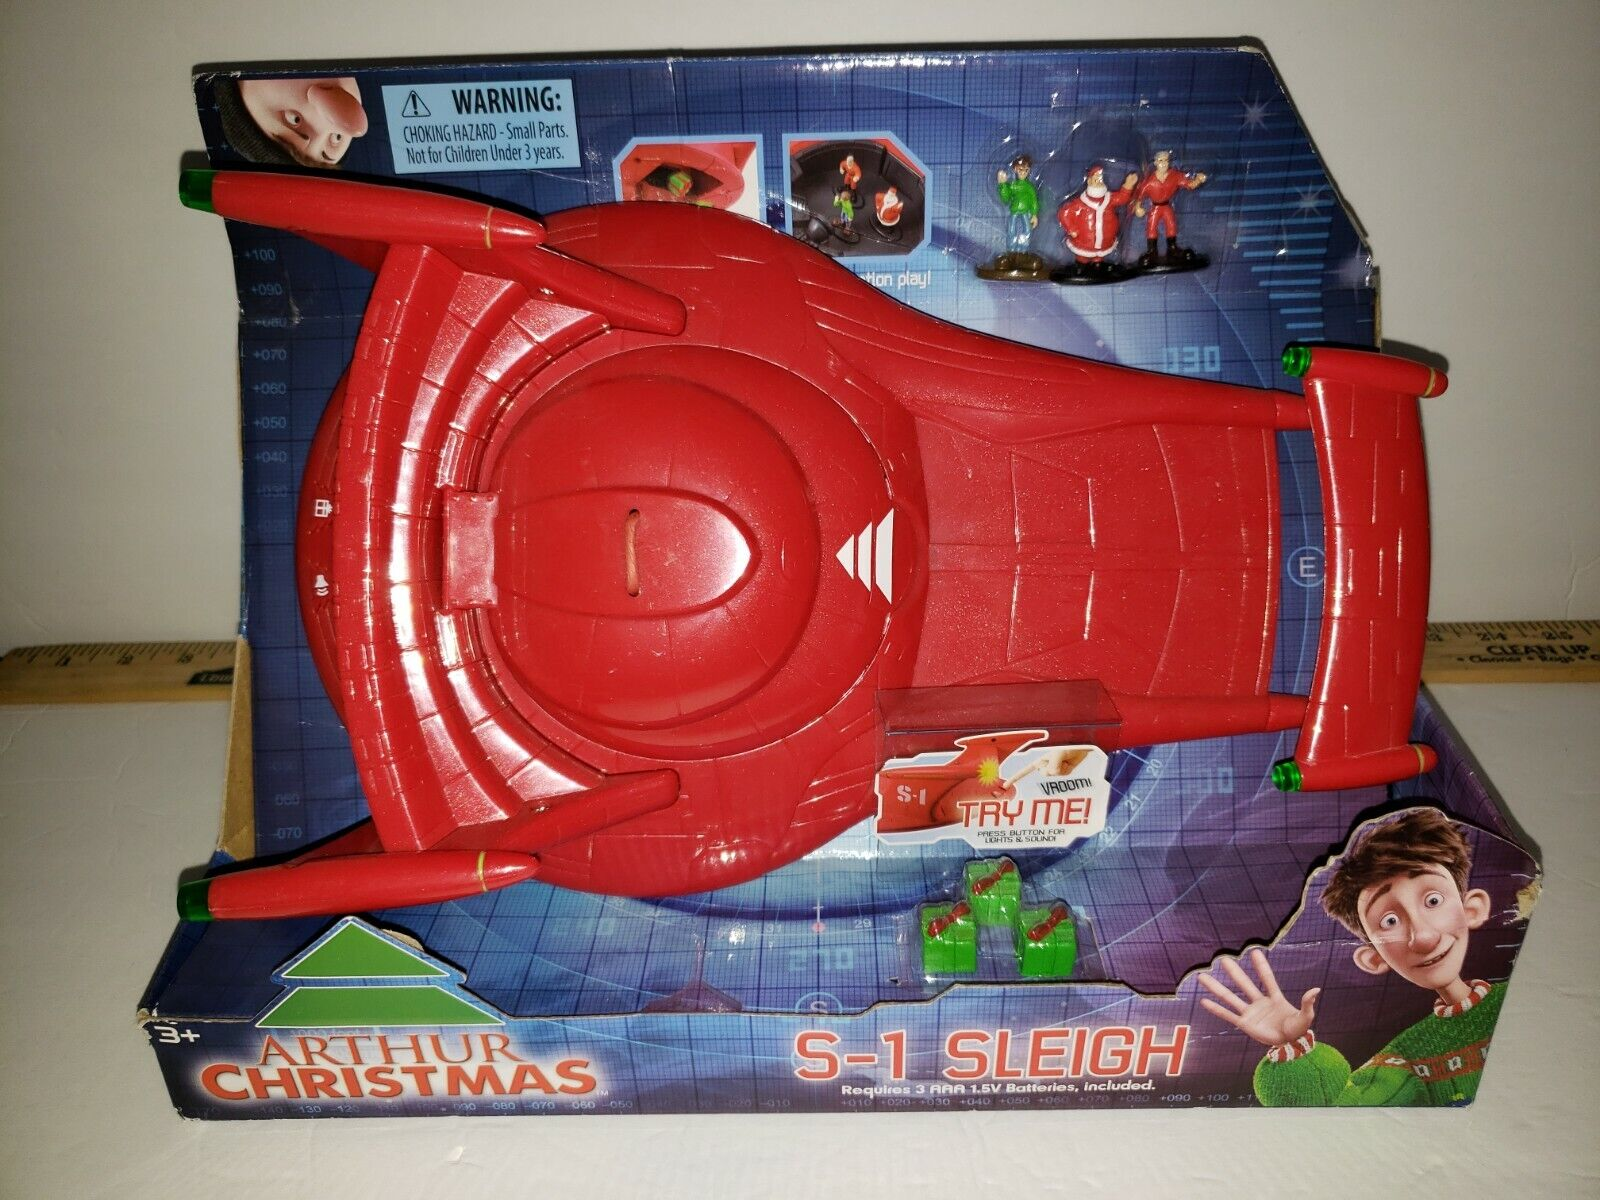 Arthur Christmas S 1 Sleigh Playset Rare Sealed New With Figures Accessories For Sale Online